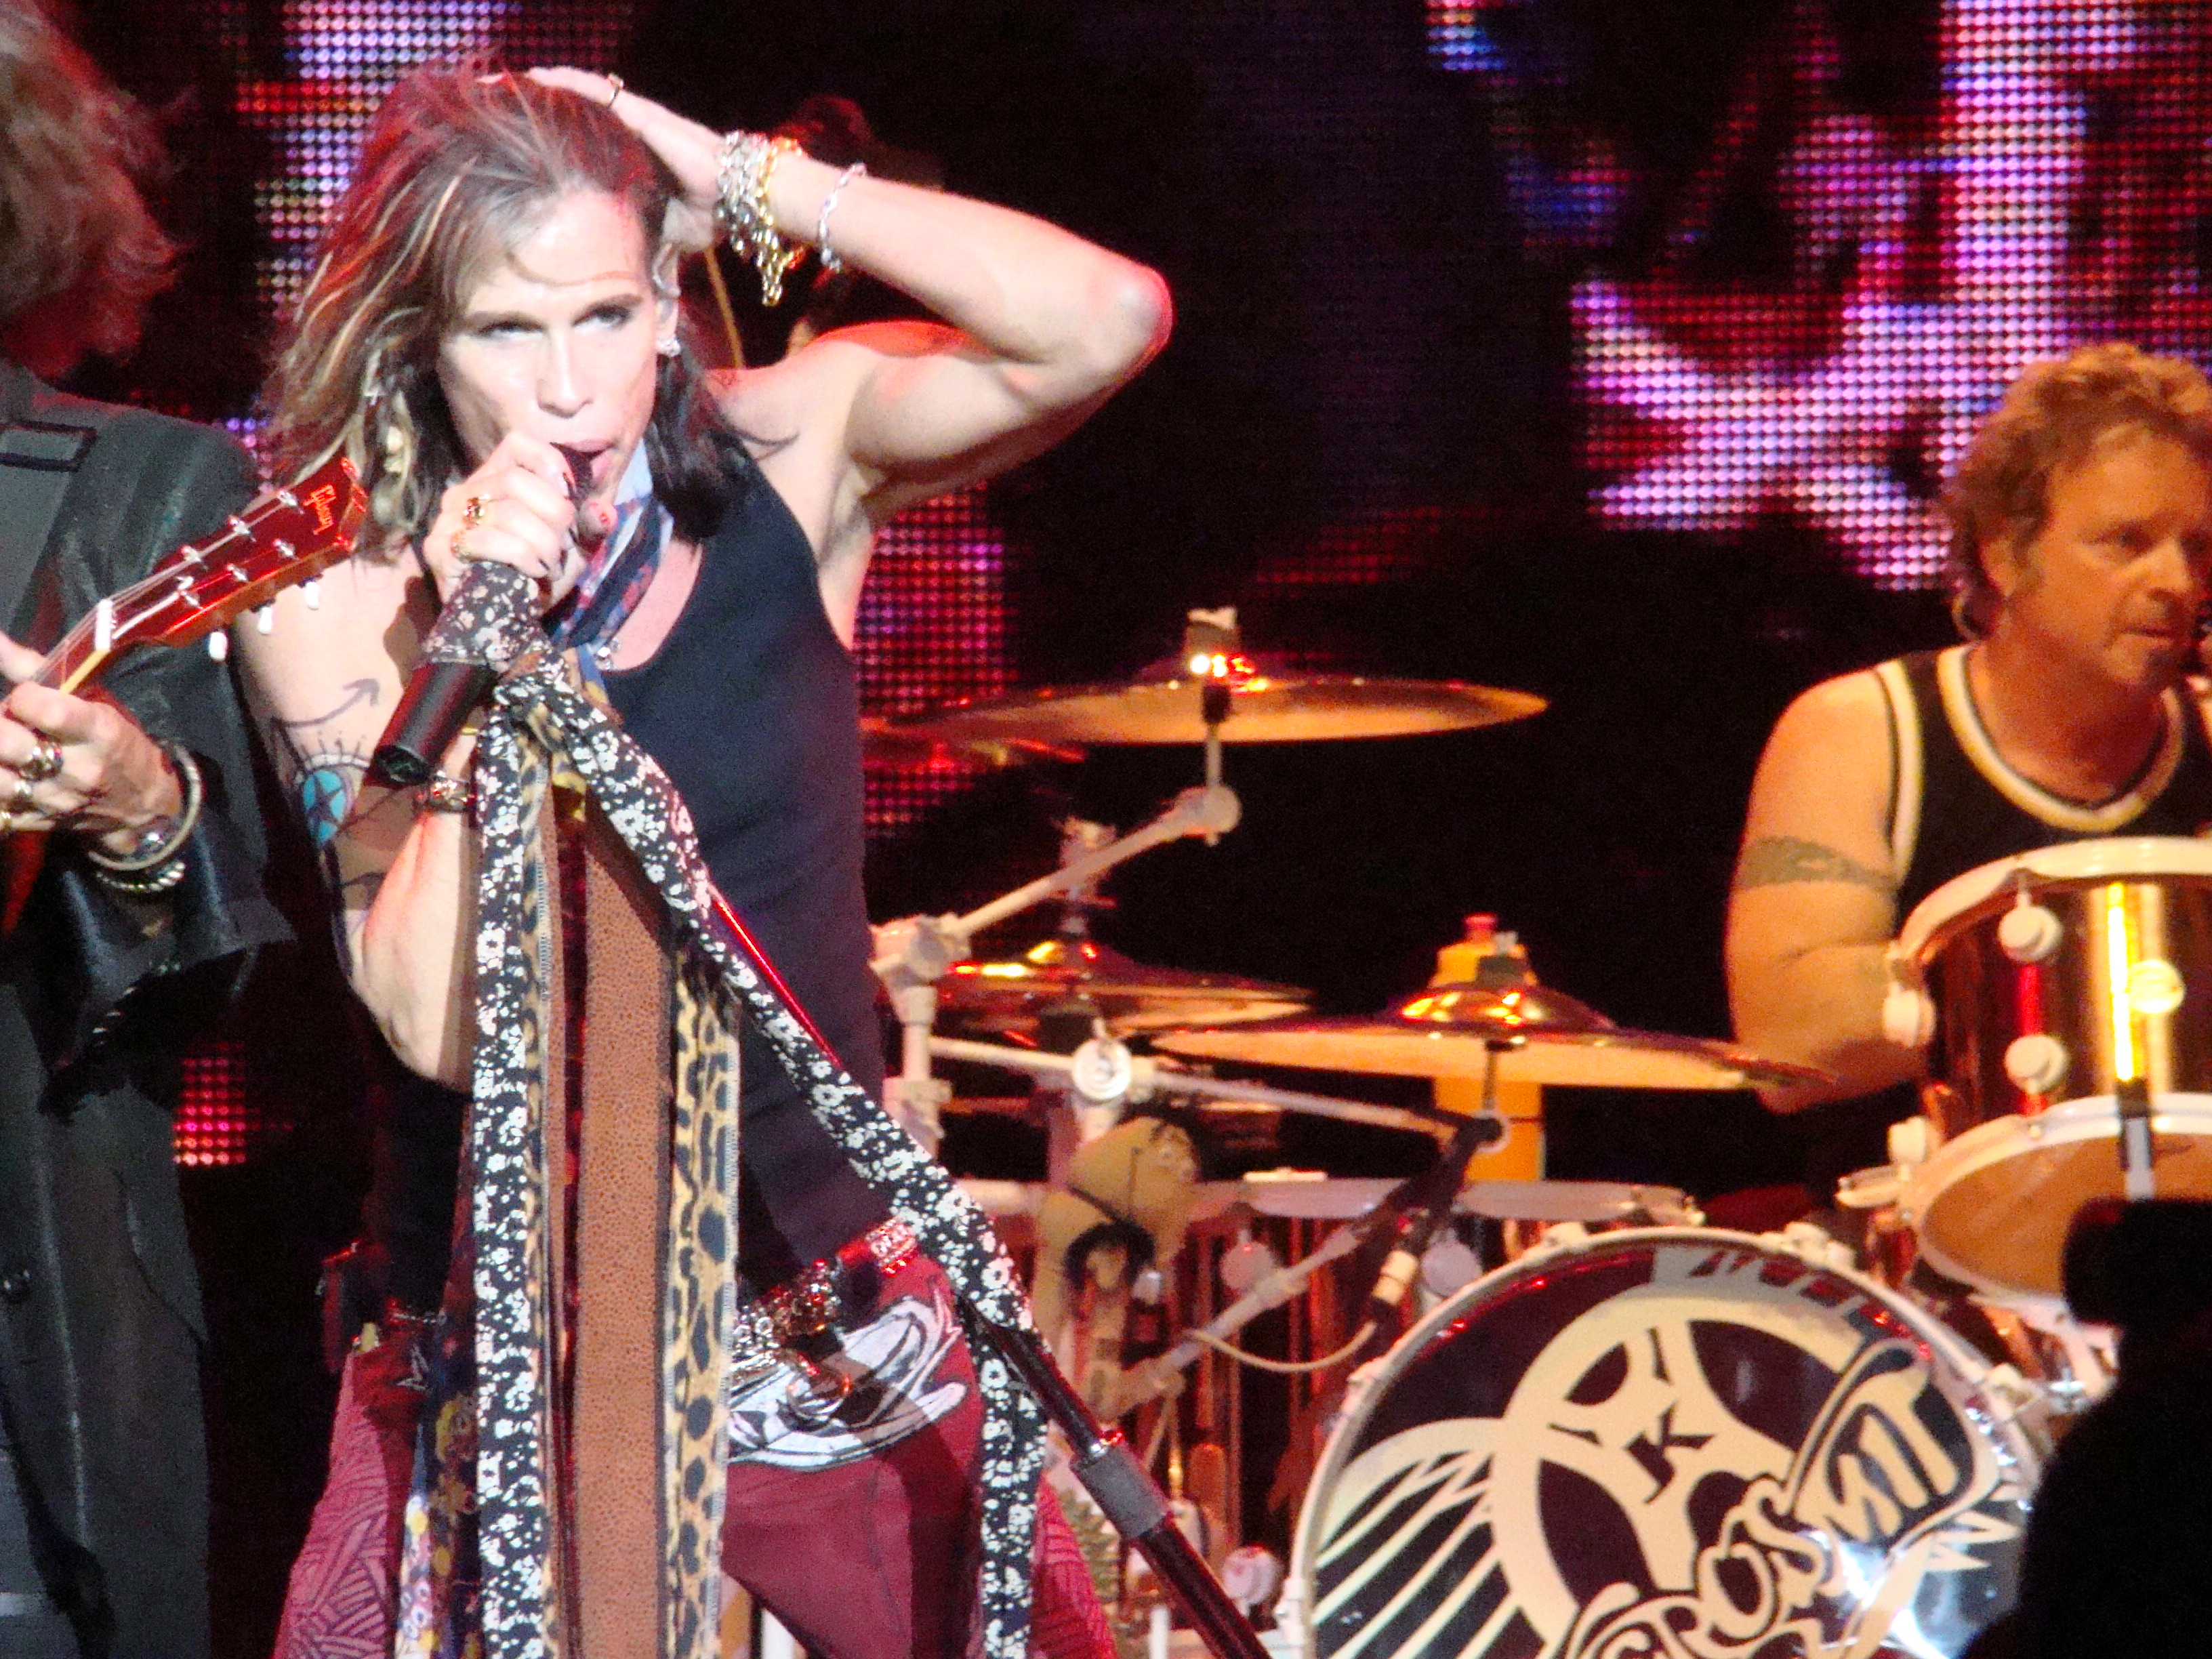 aerosmith summary Aerosmith was one of the most popular hard rock bands of the '70s, setting the style and sound of hard rock and heavy metal for the next two decades with their.